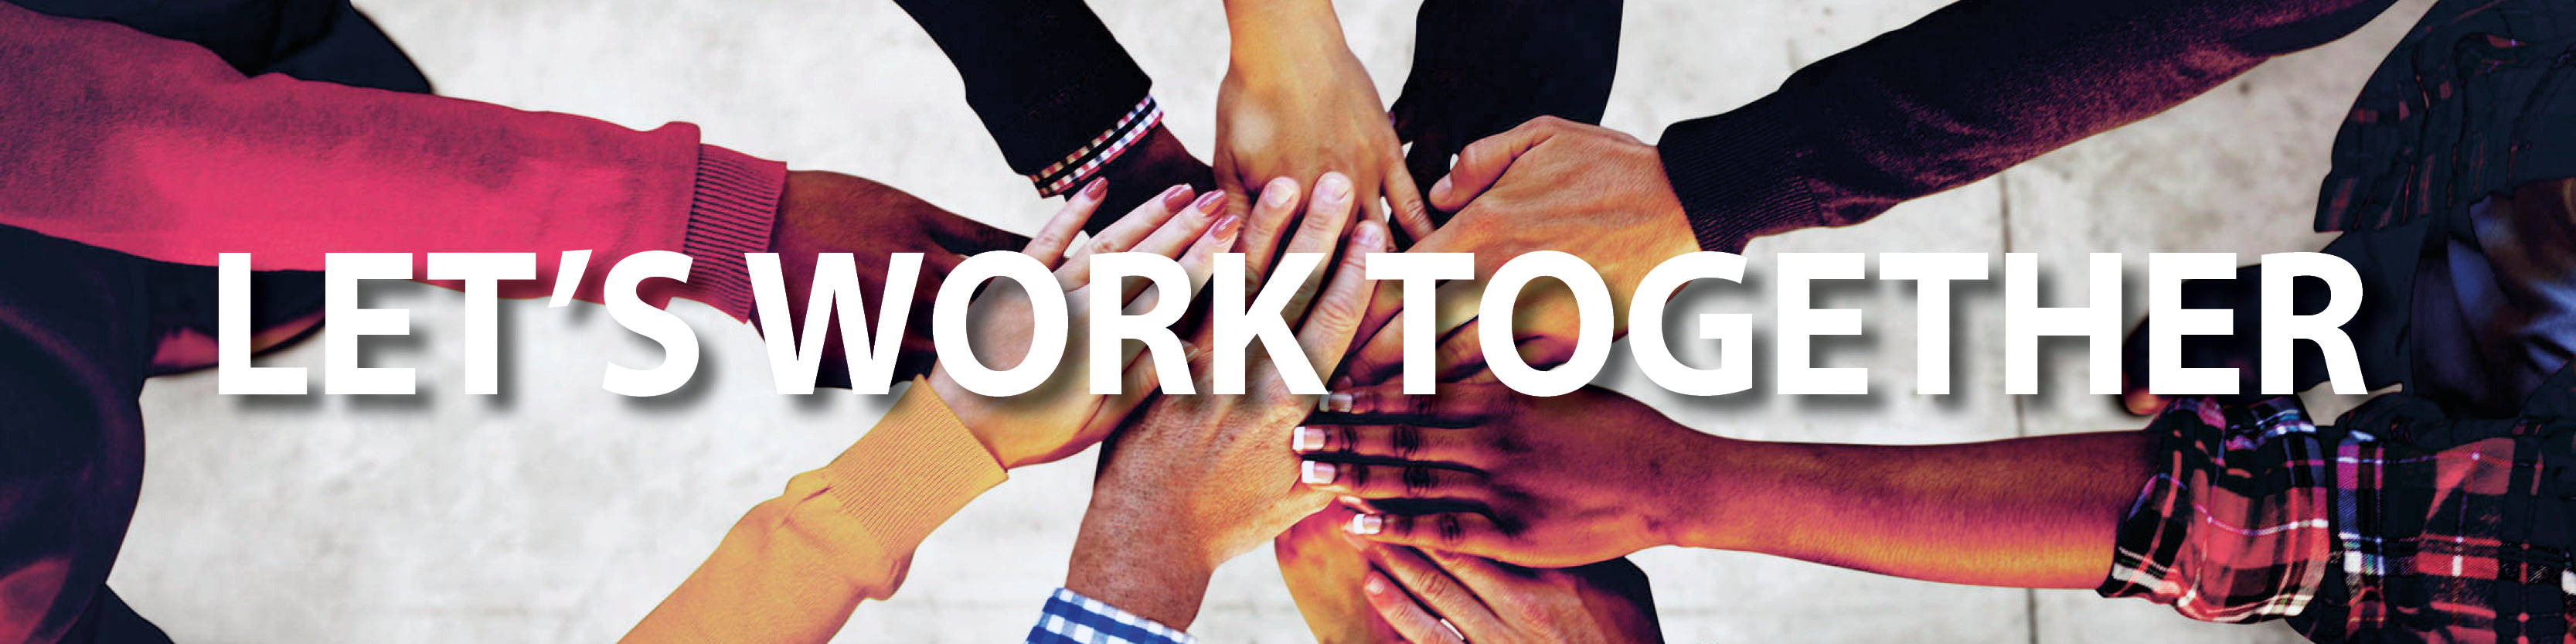 letsworktogetherheaders